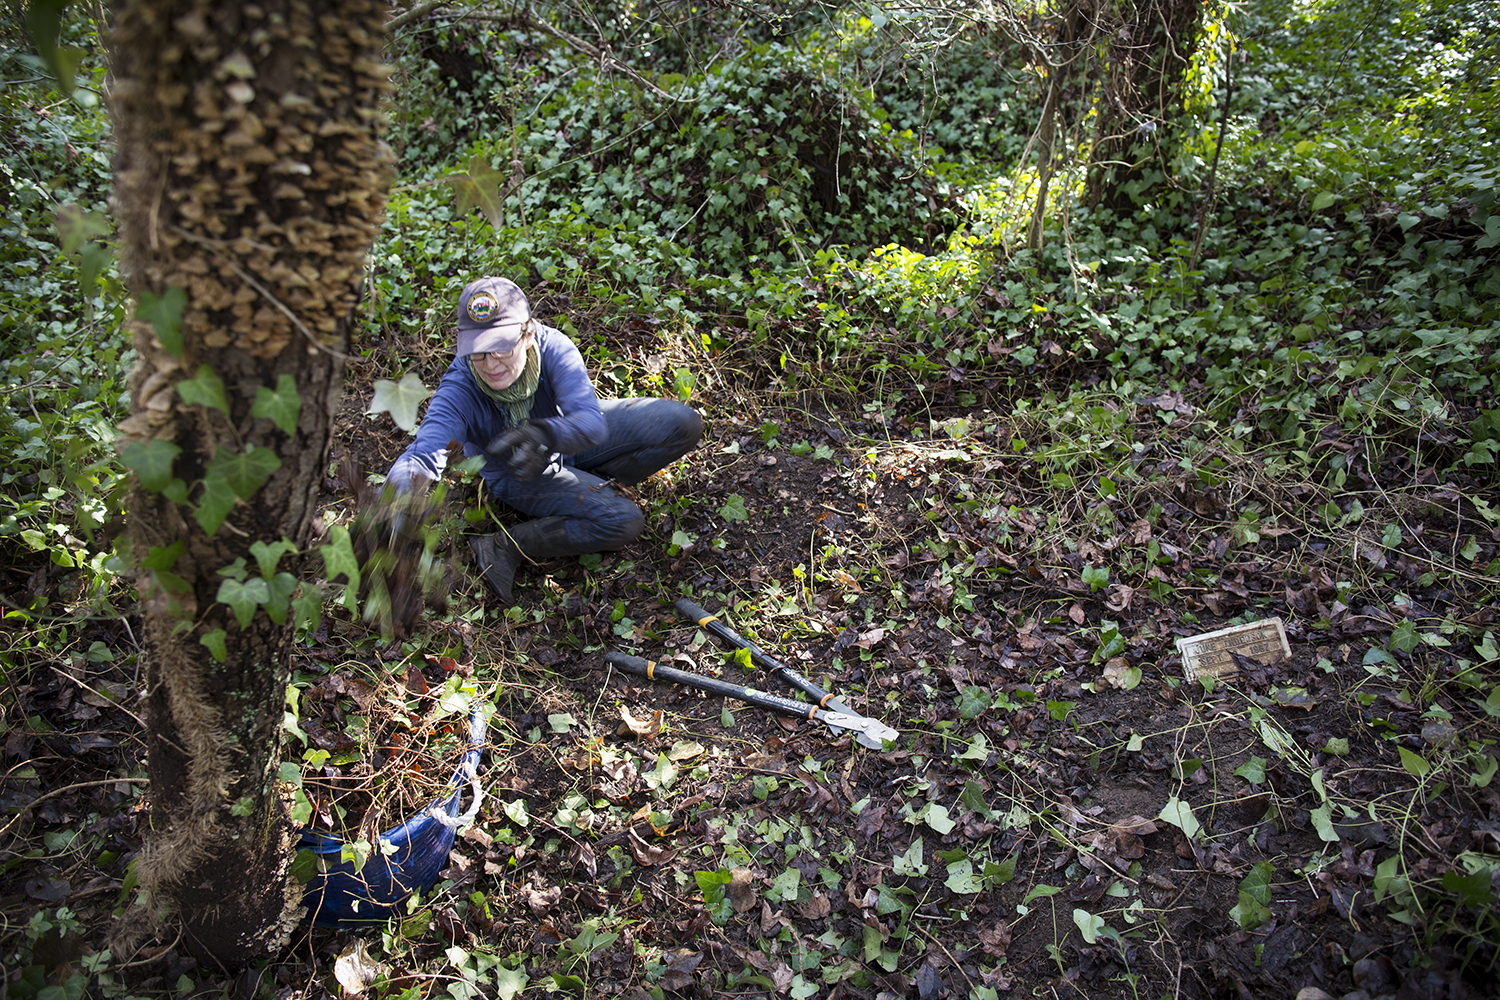 Erin clears invasive plants and vines from graves, East End Cemetery work day, January 2015. ©brianpalmer.photos 2015